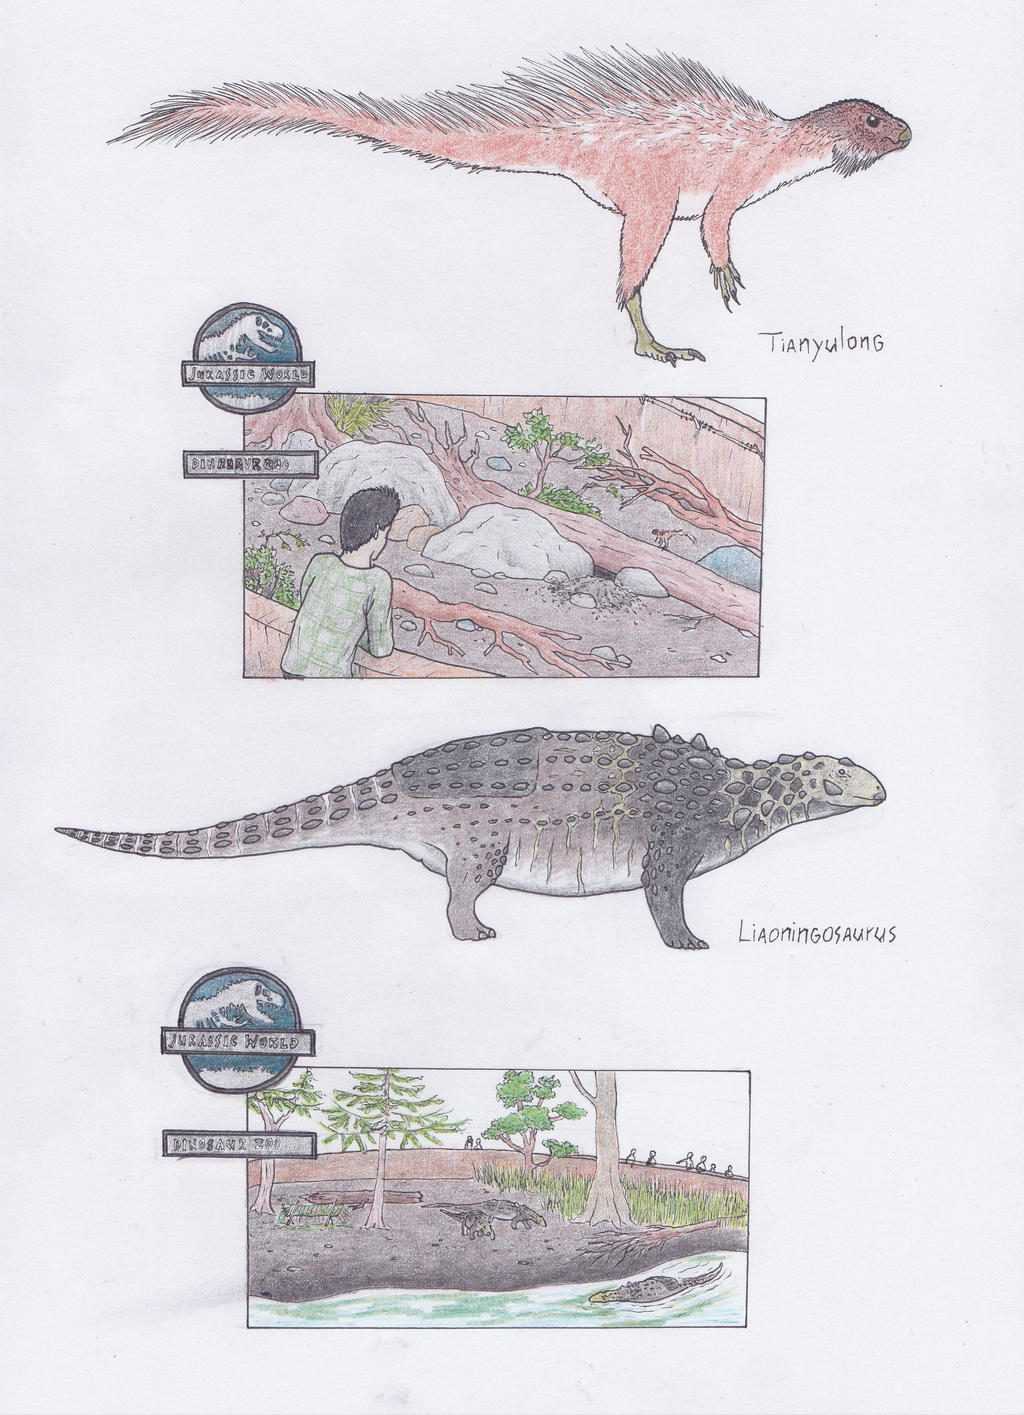 Dinosaur Zoo: Porcupines and mini tanks by Dontknowwhattodraw94